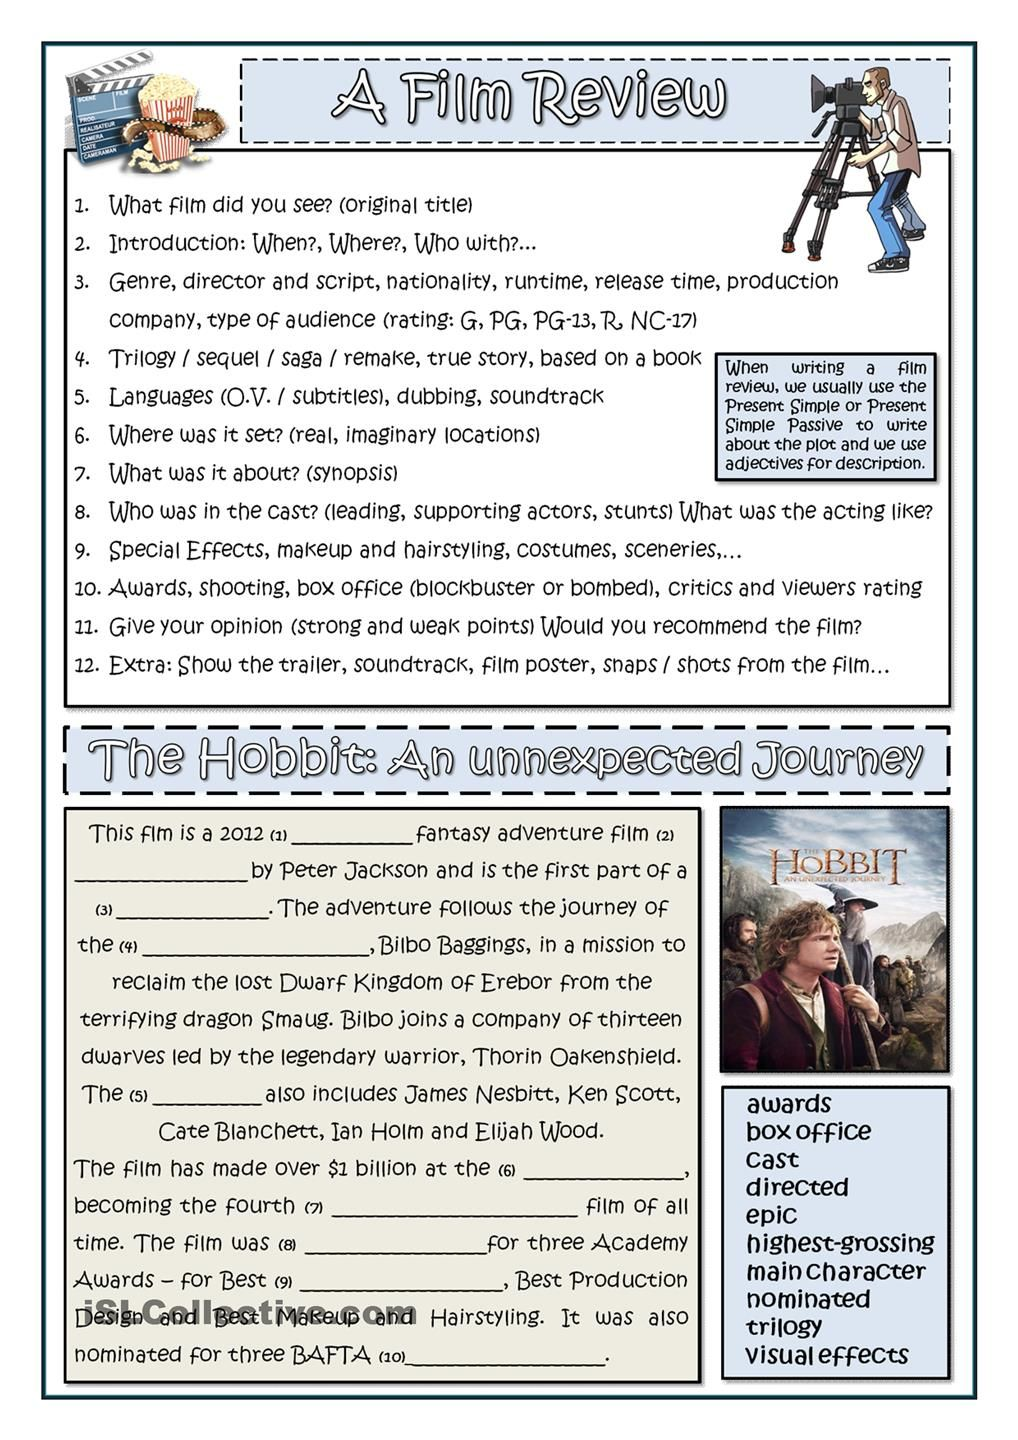 Uncategorized Movie Worksheets how to write a film review worksheet of the day on june 19 2015 2015